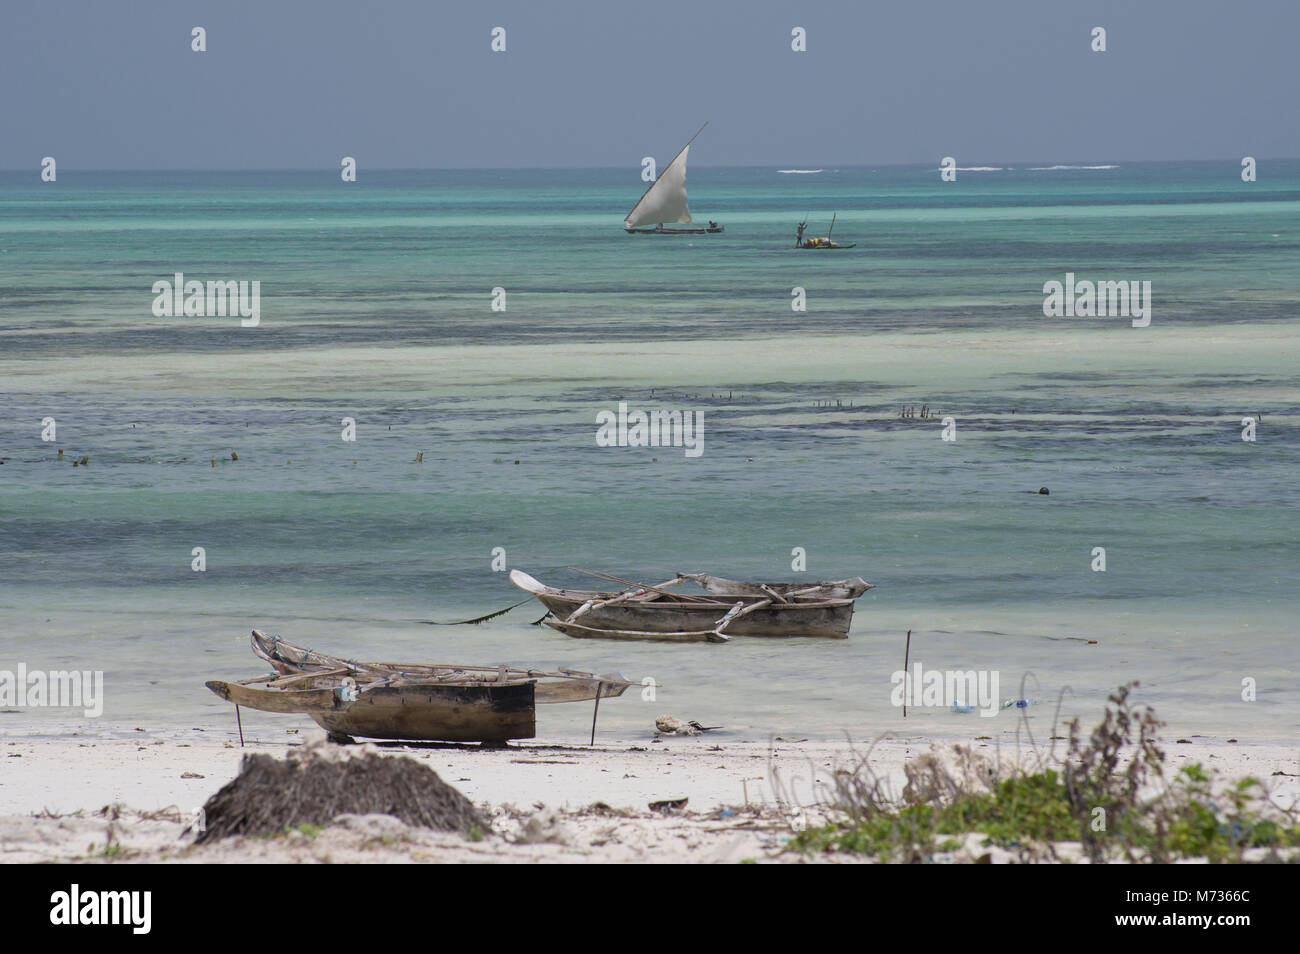 The turquoise waters of the Indian Ocean at low tide with beached boats, dhows, in the forground and a sailing boat - Stock Image